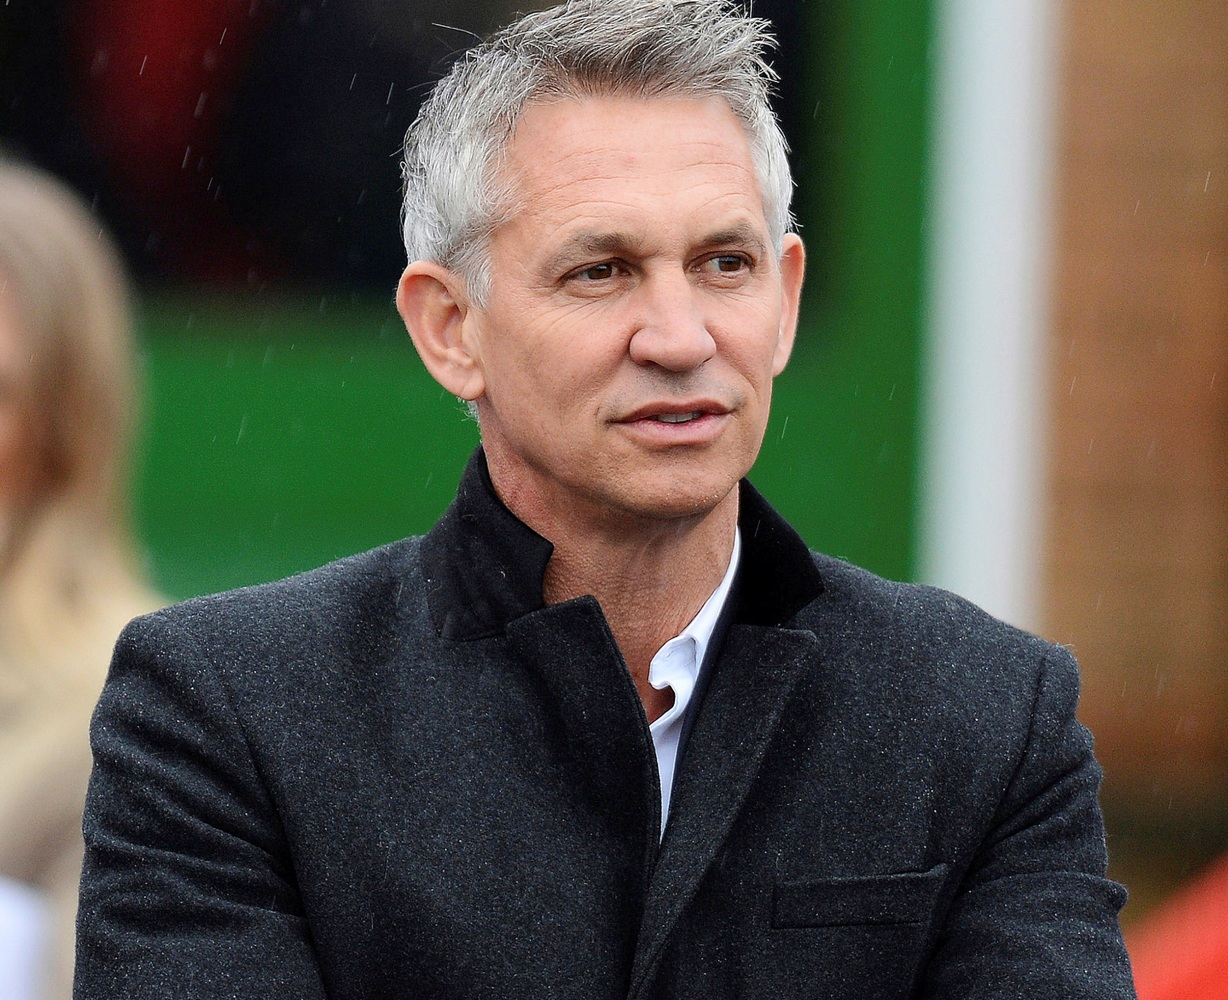 Gary Lineker says people are really wrong about this Arsenal player